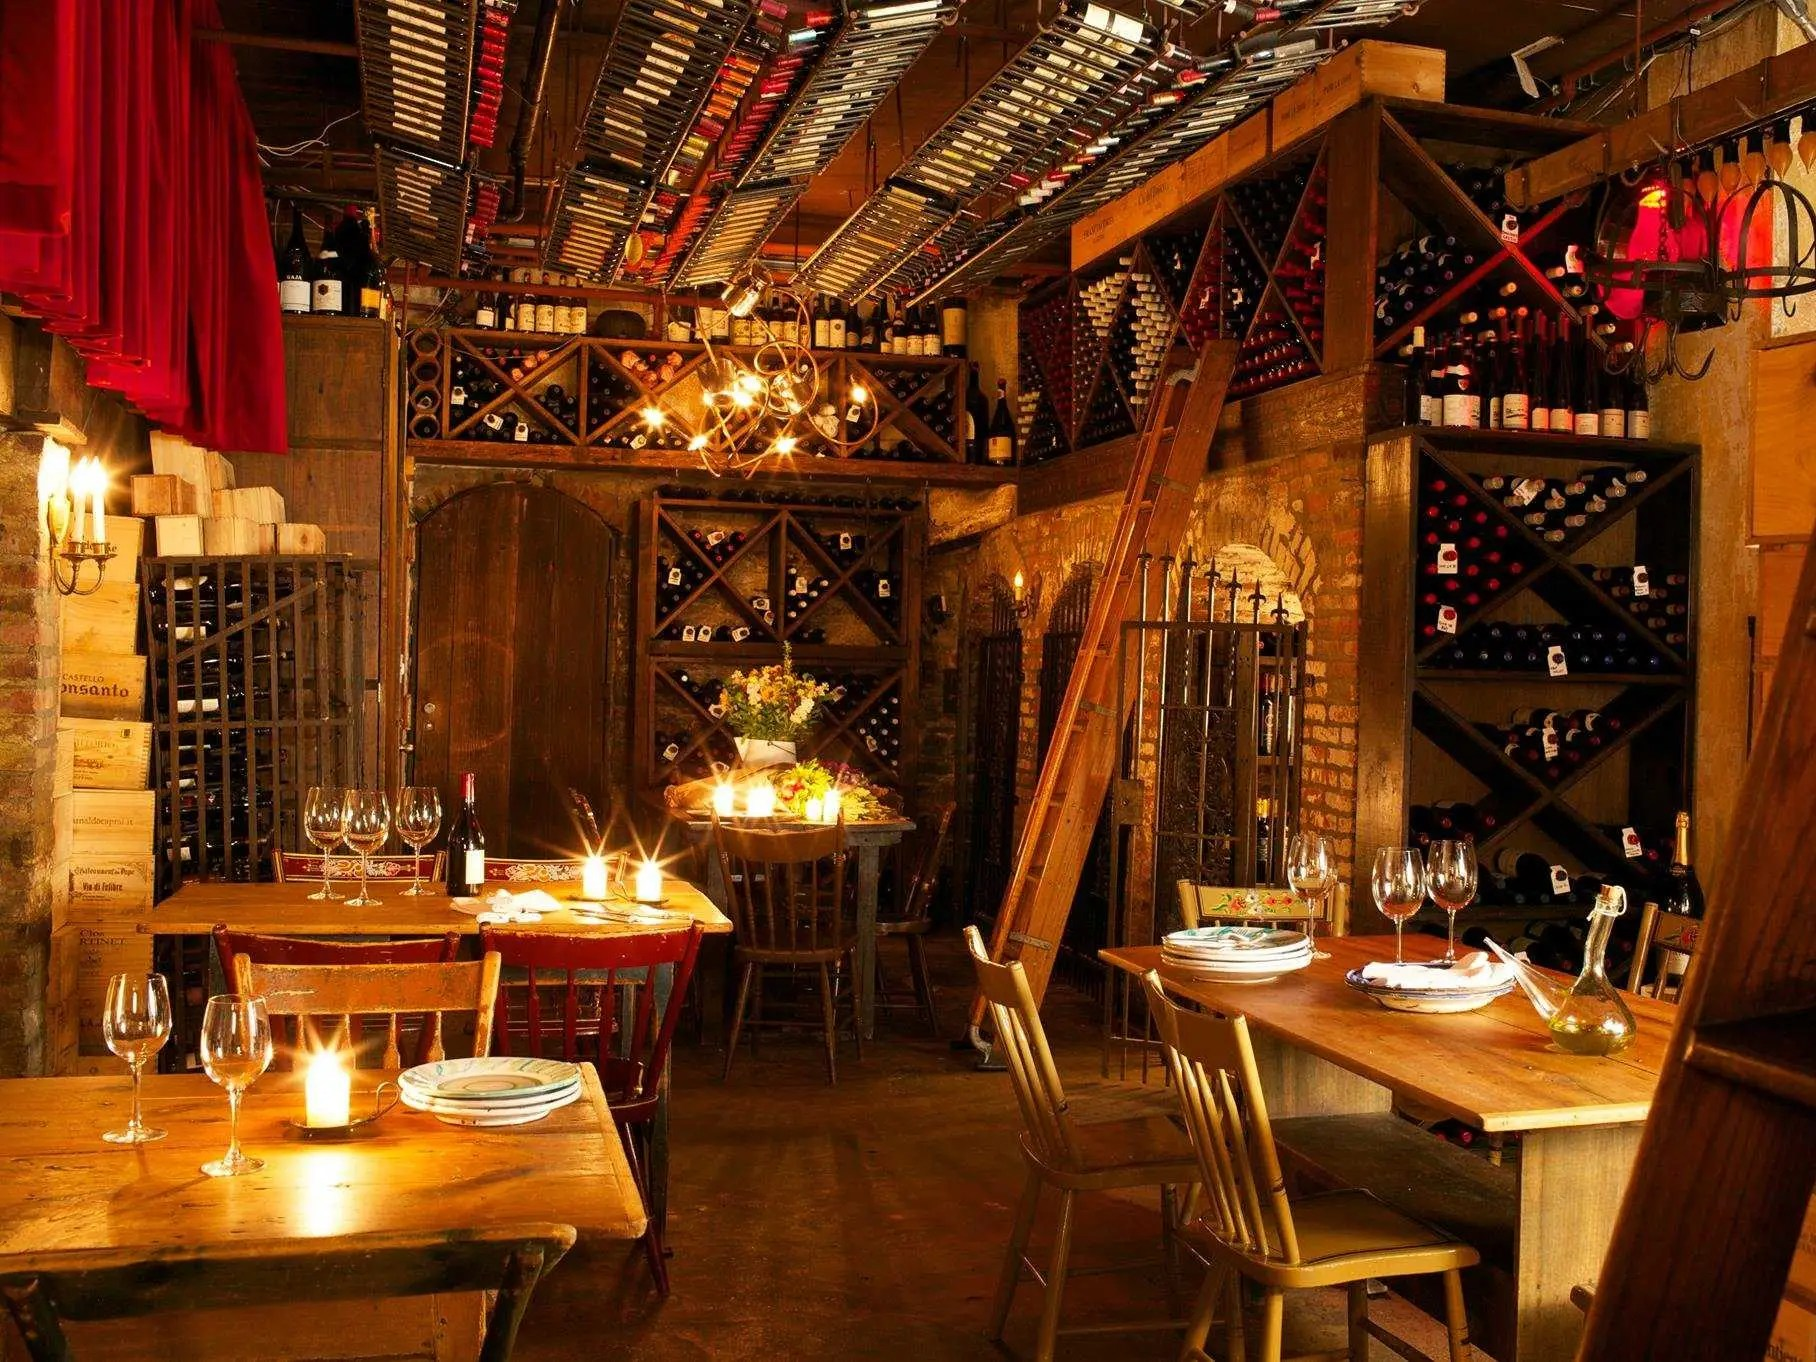 Restaurant A New York The 8 Most Romantic Restaurants In New York City